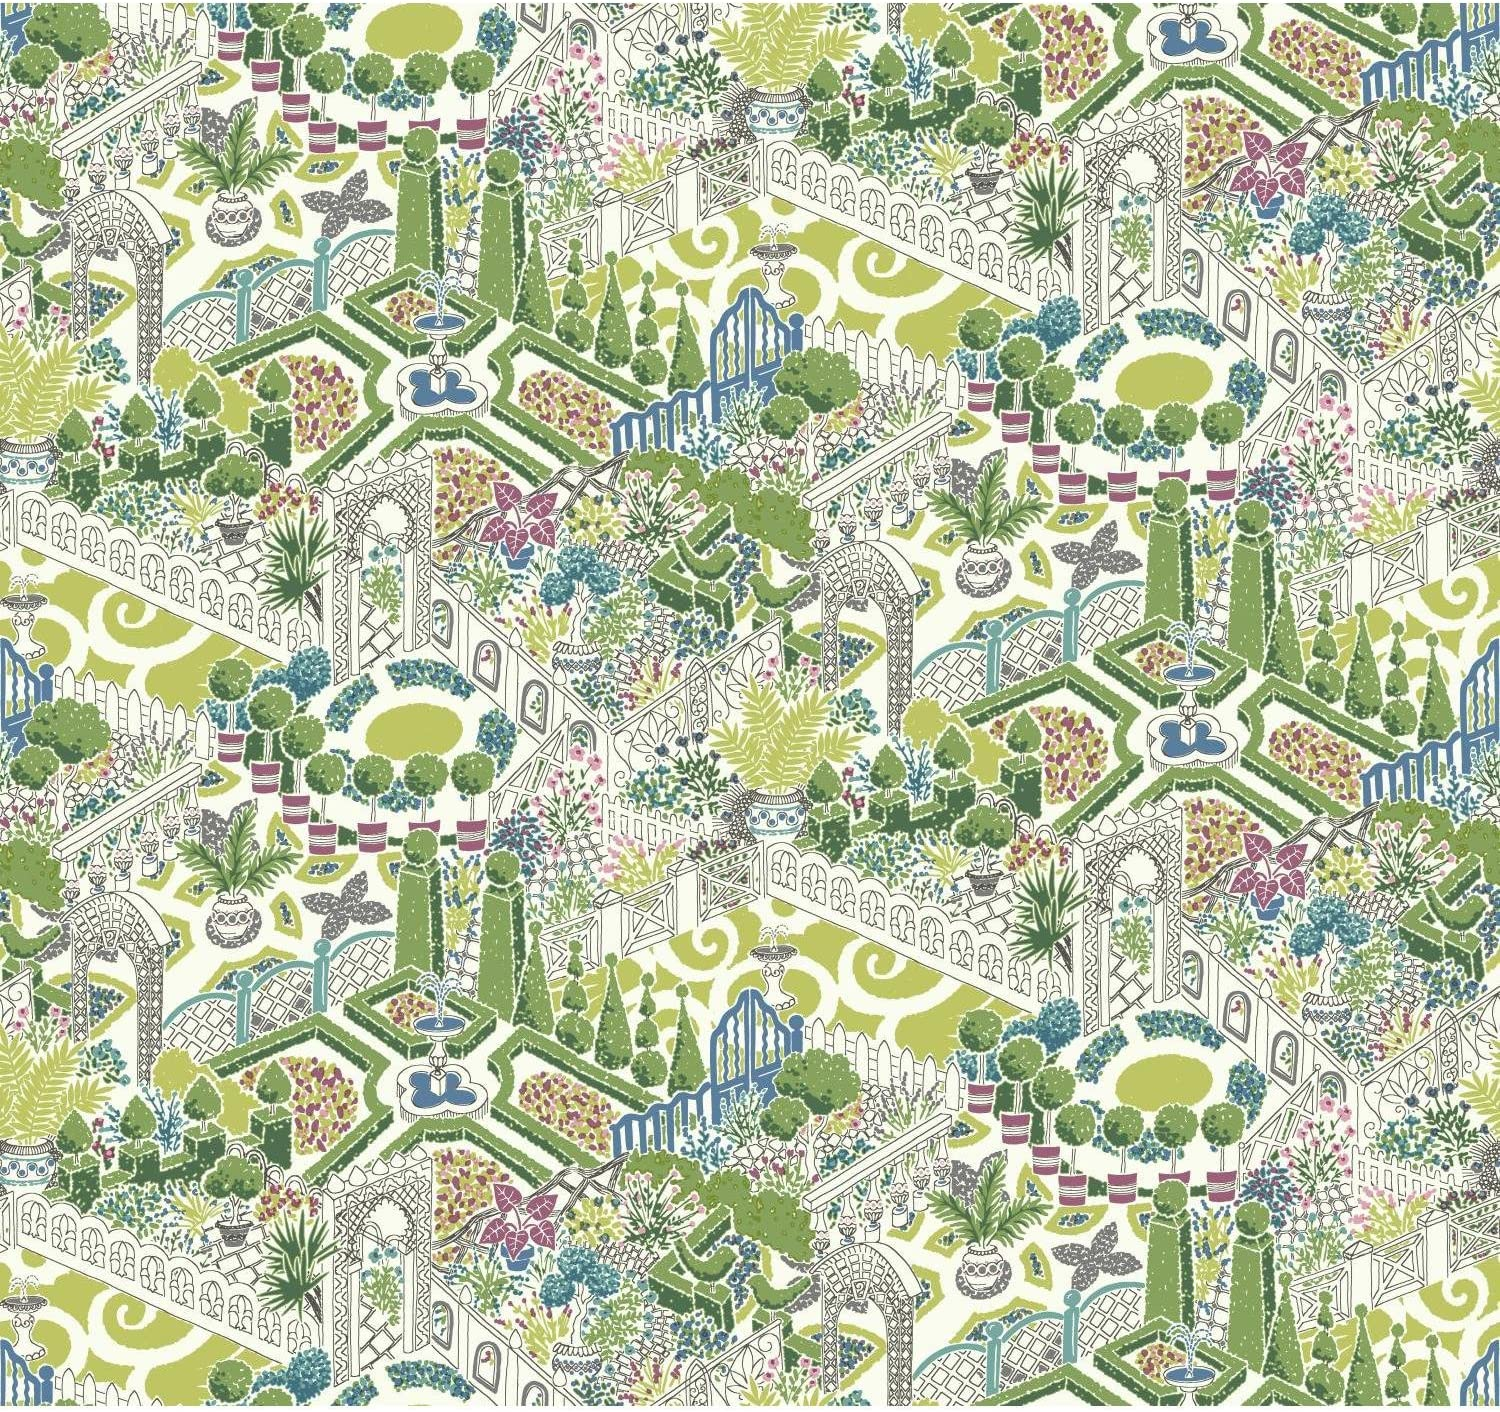 York Wallcoverings Waverly How Does Your Garden Water-Activated Removable Wallpaper - Green | Spray with Water and Hang | Ultra Easy